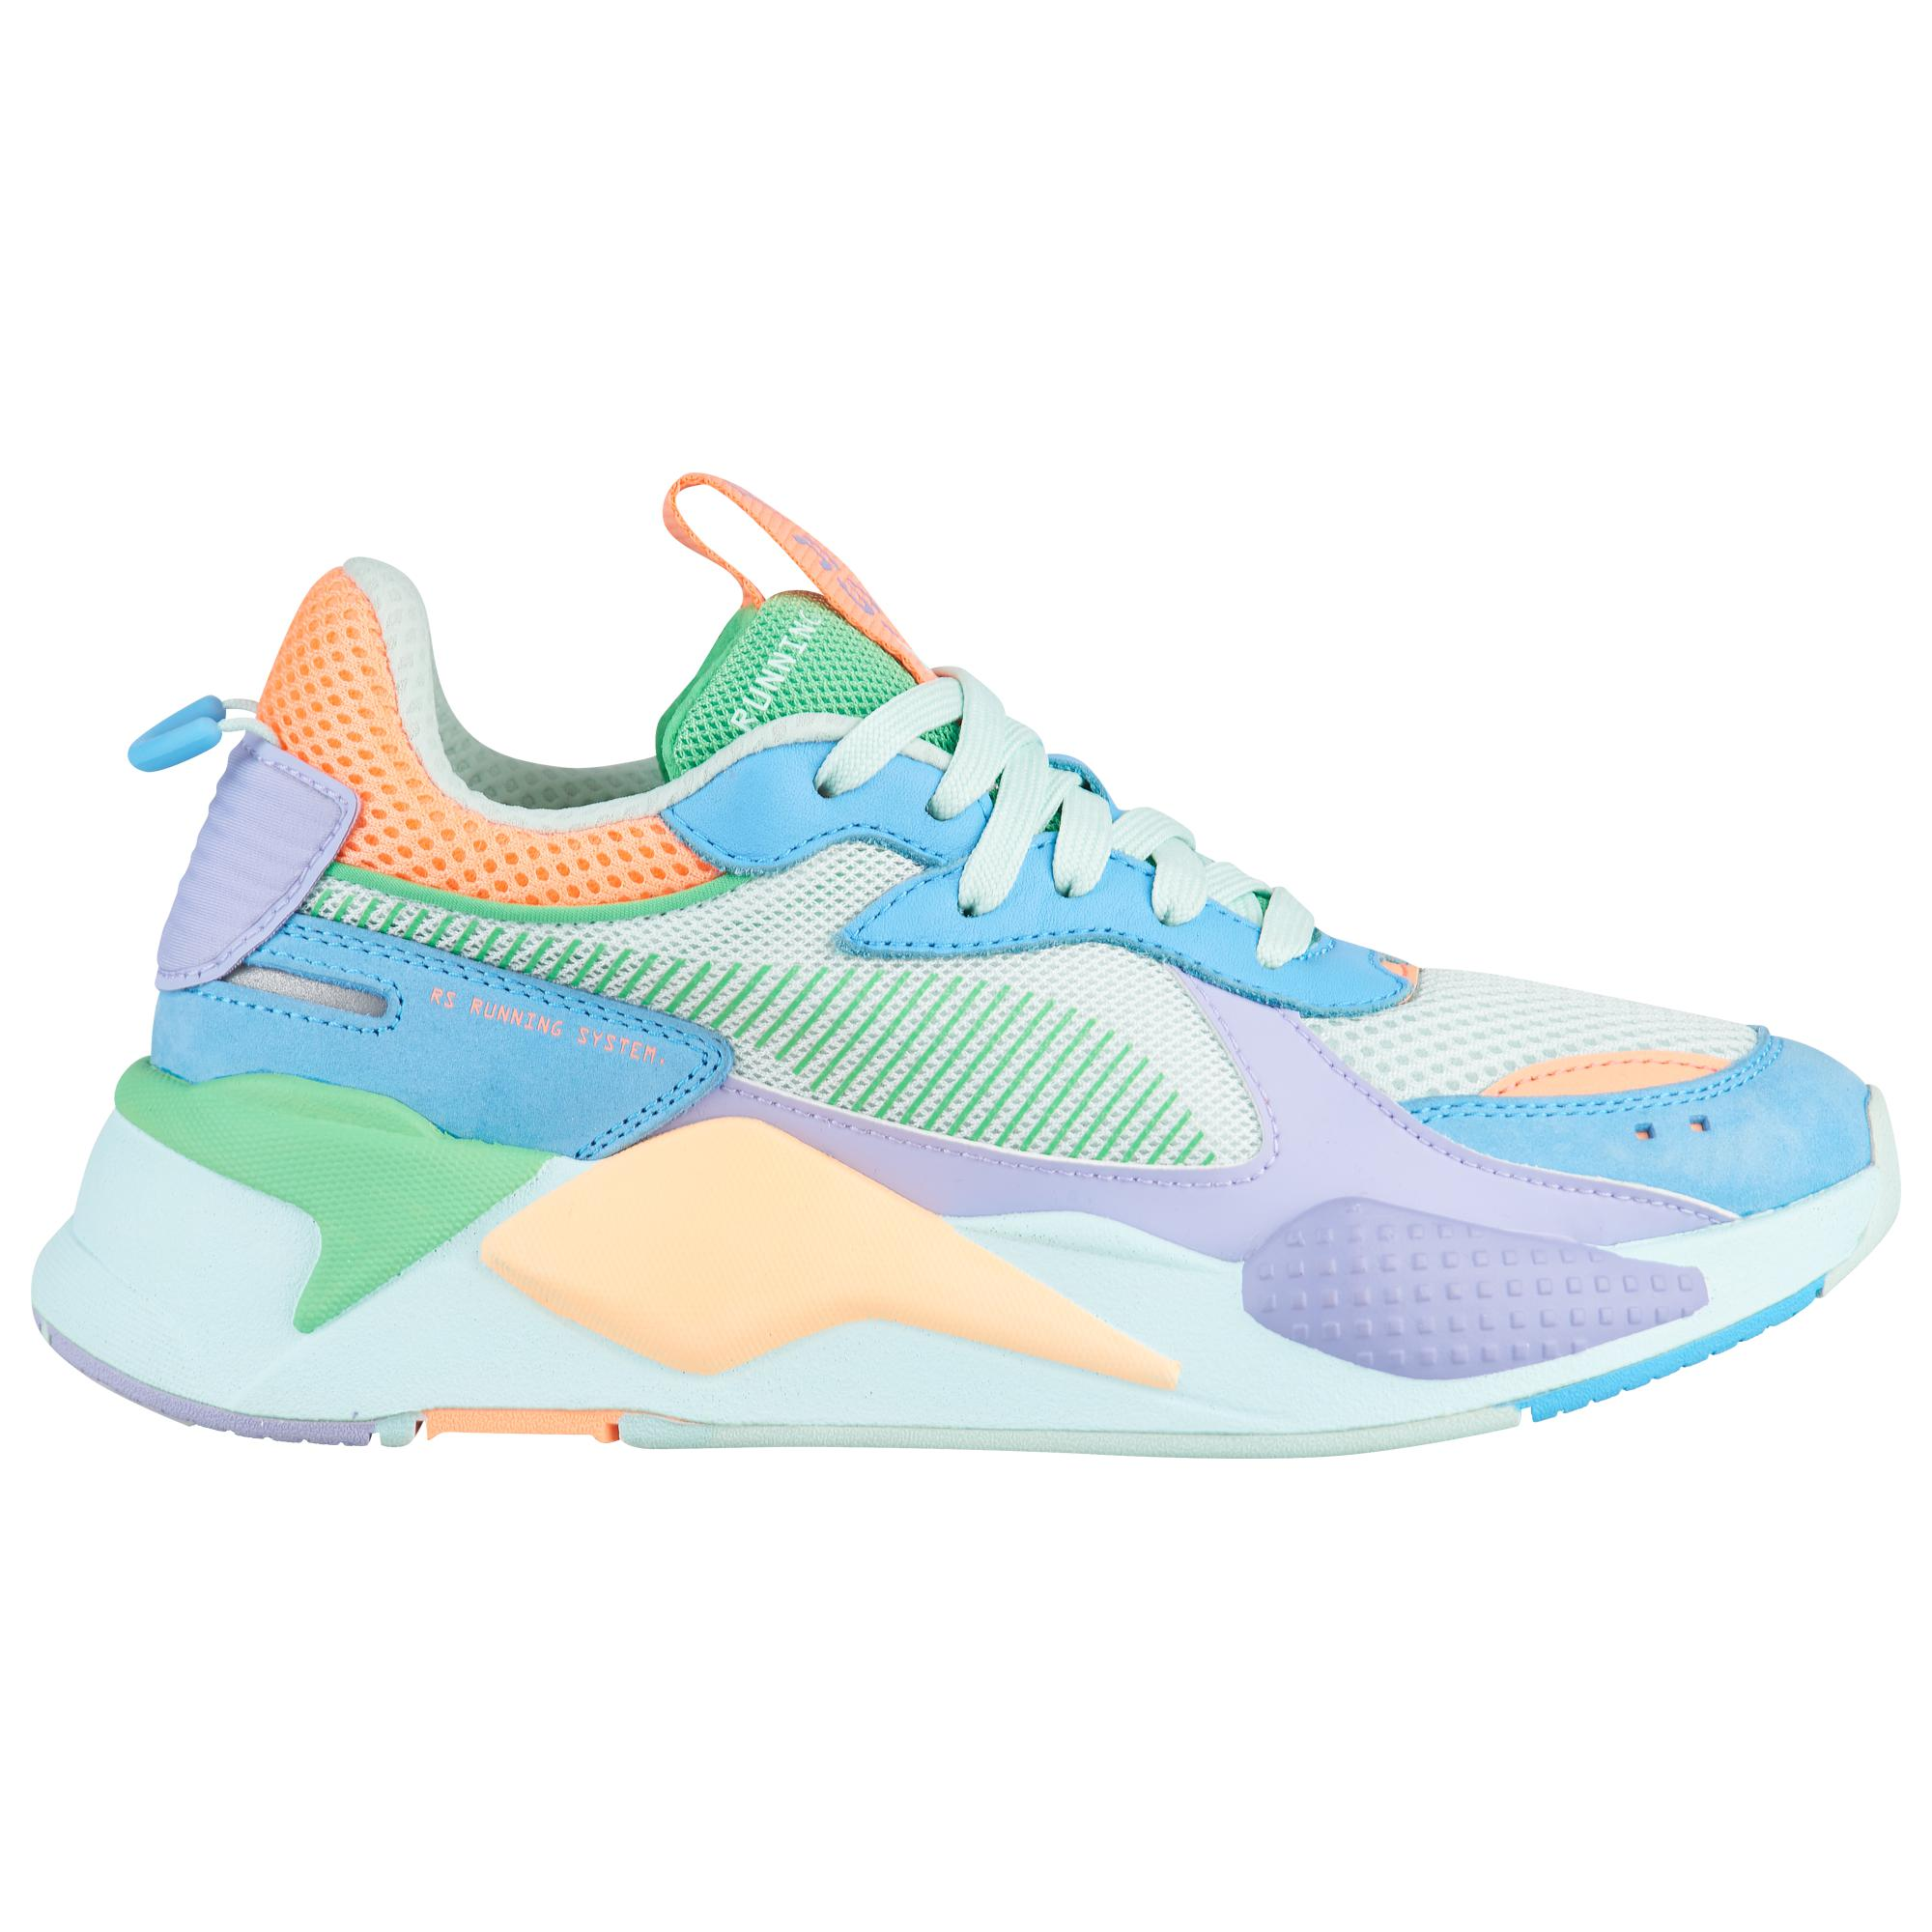 Lyst - PUMA Rs-x Toys in Blue - Save 9% a53ea657a